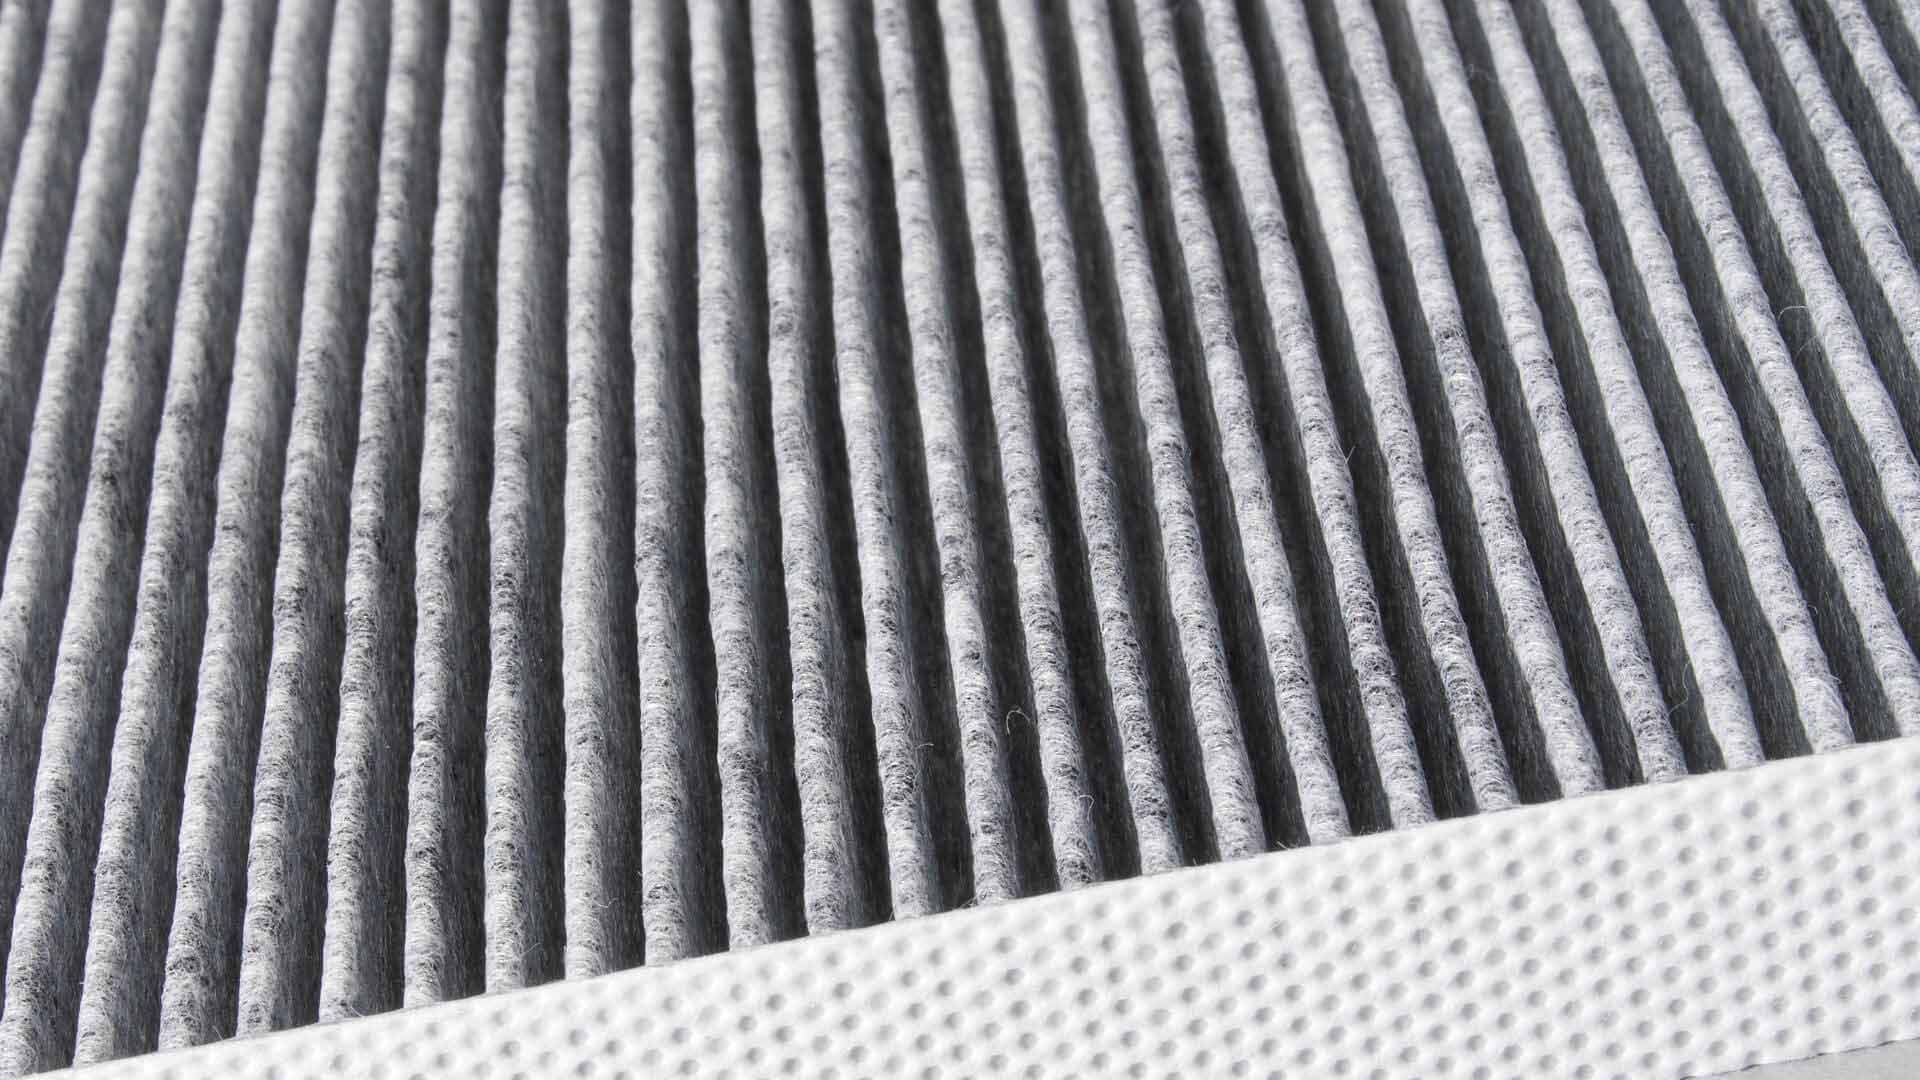 2018 lexus ownership parts gallery04 cabin air filter